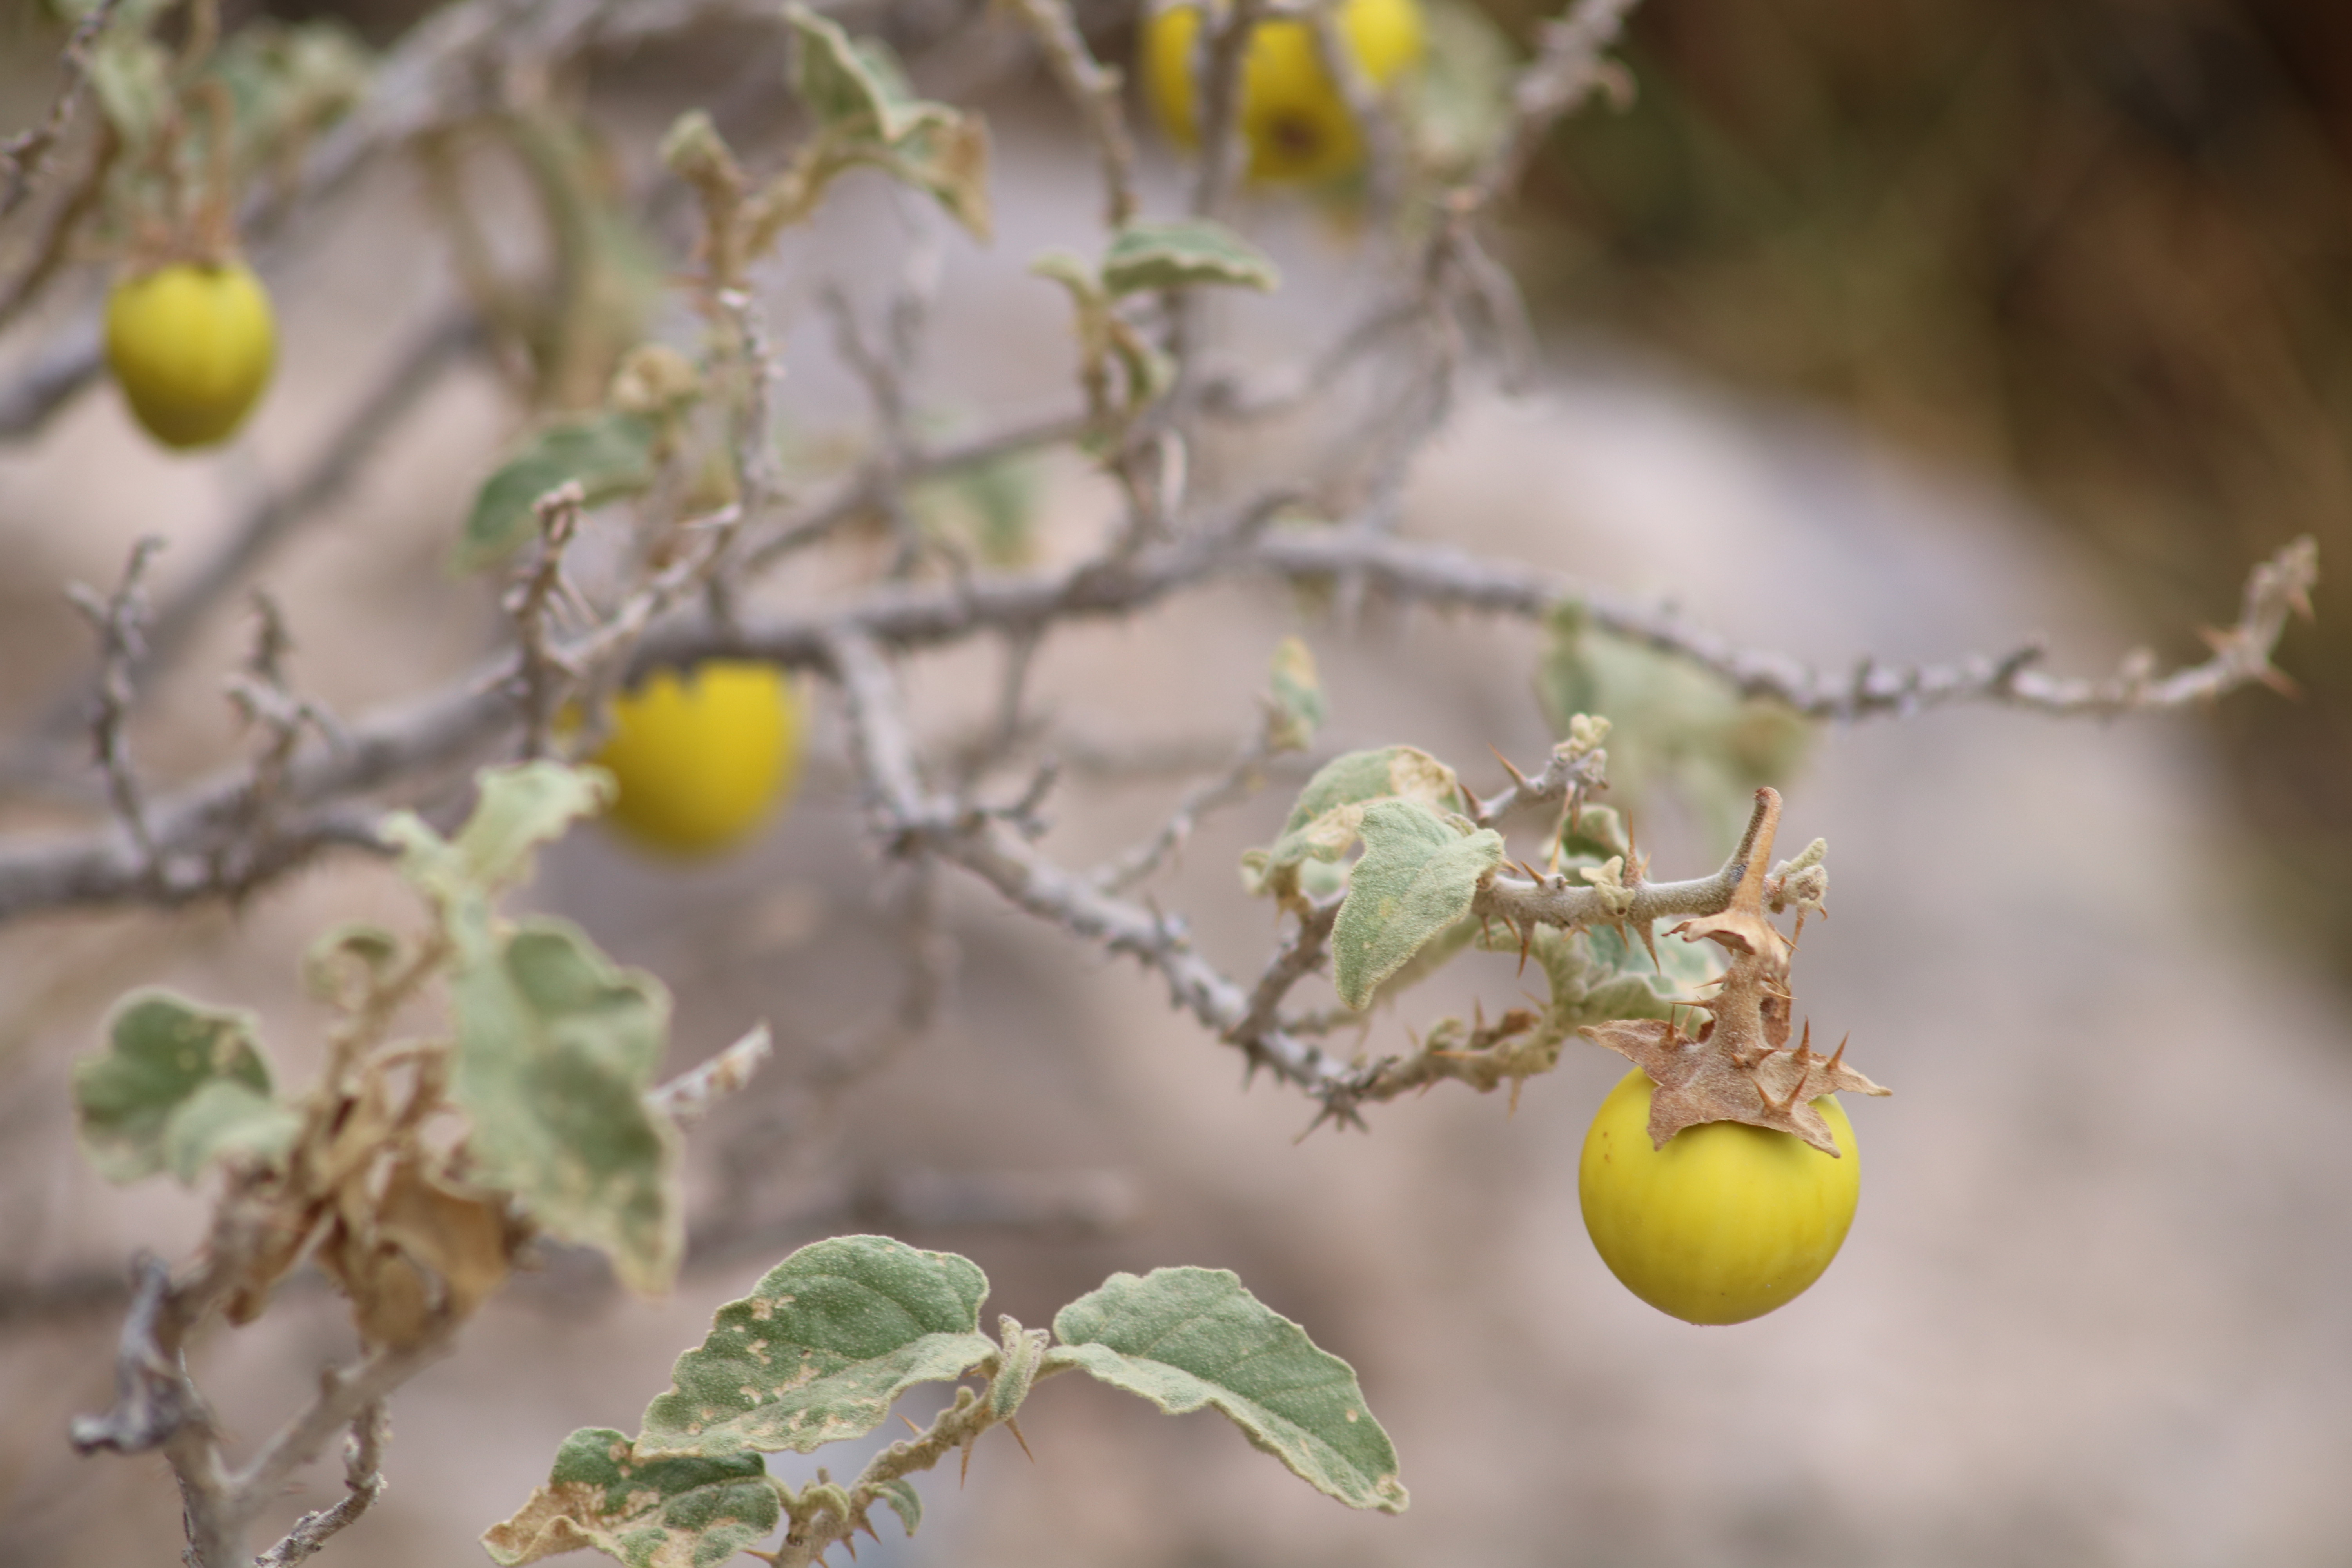 Oman Travel: A Cool Summer Hike Through the Orchards of Wakan Village in Oman